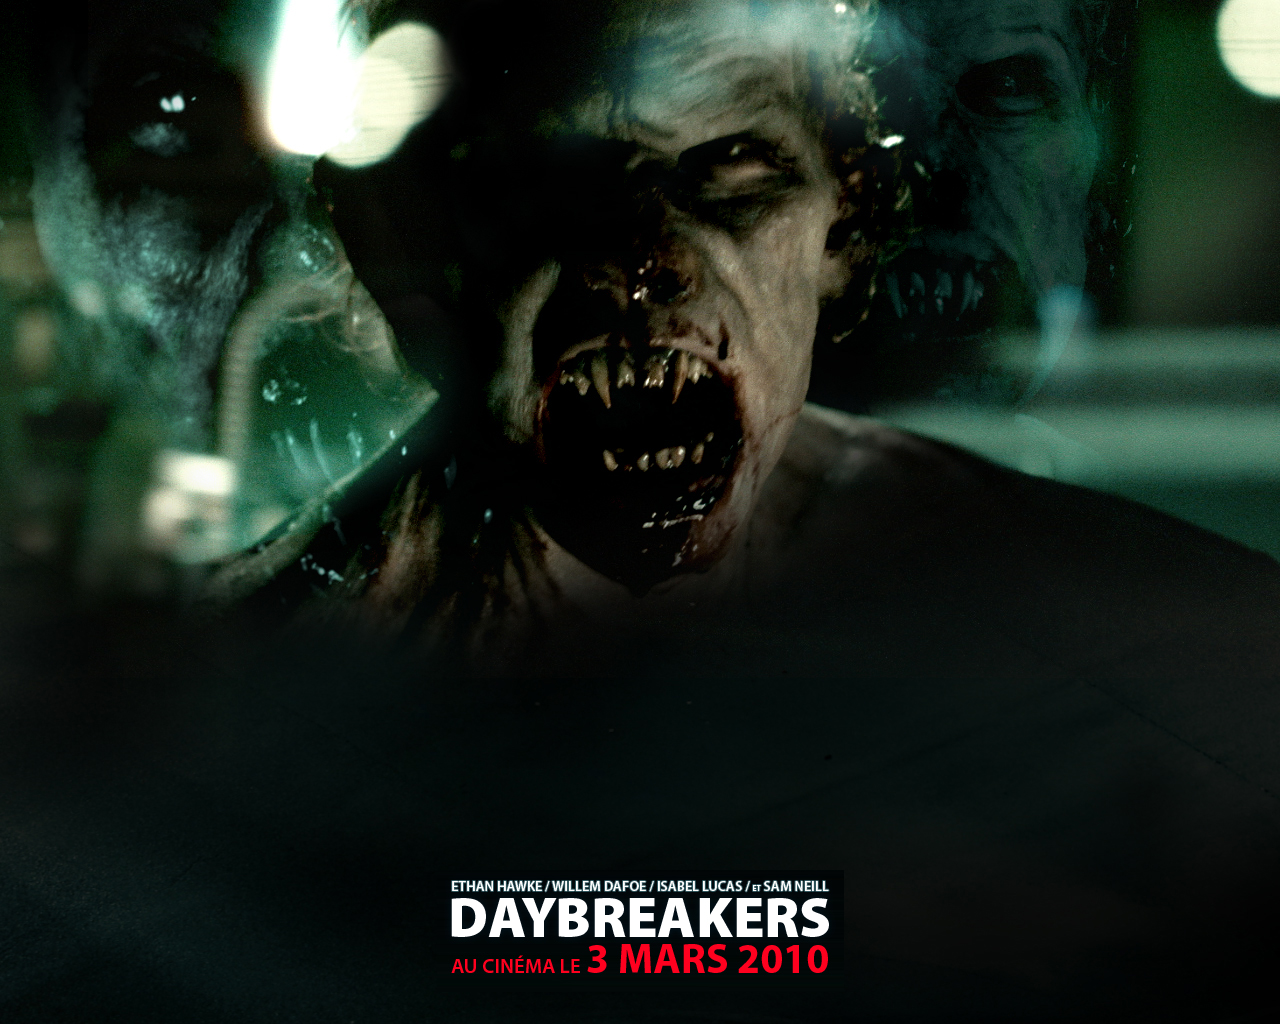 Daybreakers_02_1280x1024.jpg